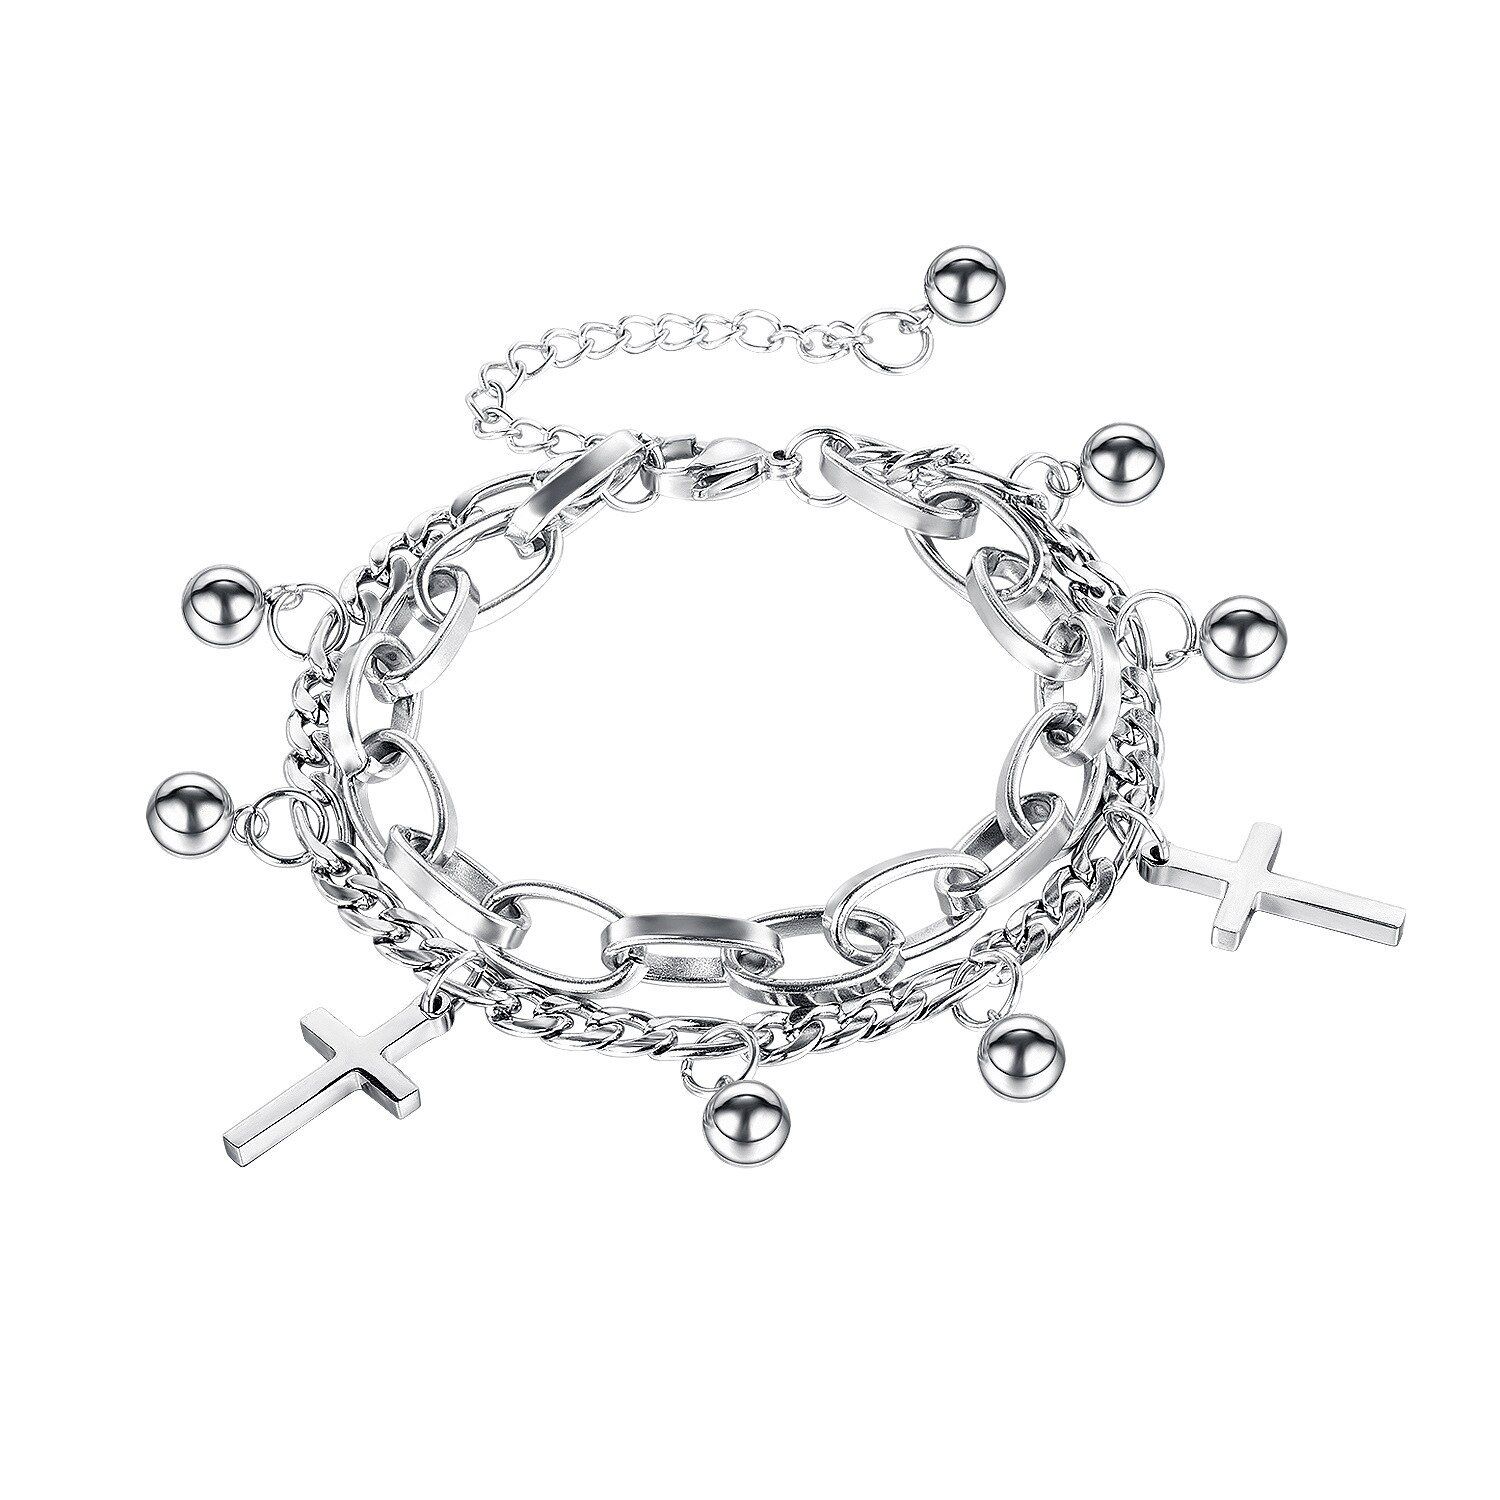 Korea New Products Classic Cross Ball Ball Double-layer Titanium Steel Bracelet Female Honey Jewelry Wholesale Gb1119.